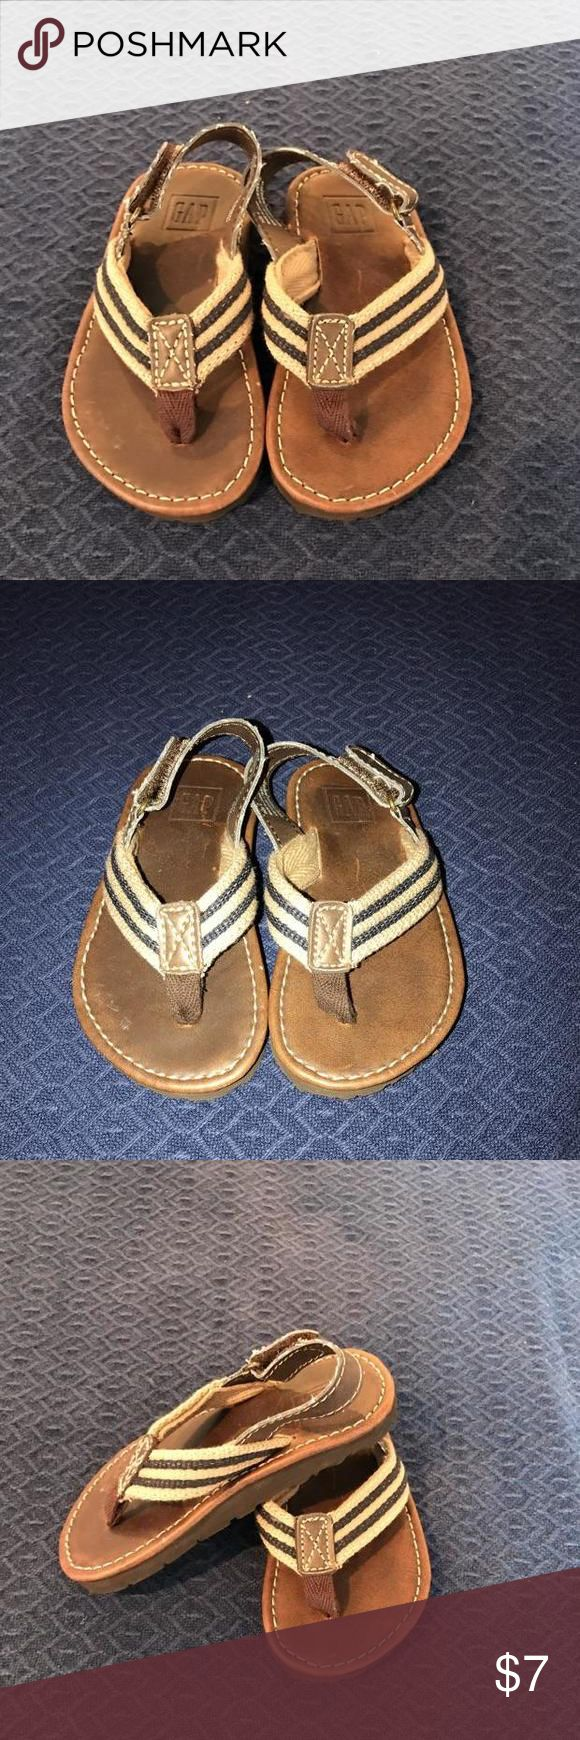 Gap Sandals - Brown with Navy Blue Gap Sandals - Brown with Navy Blue Gap Shoes